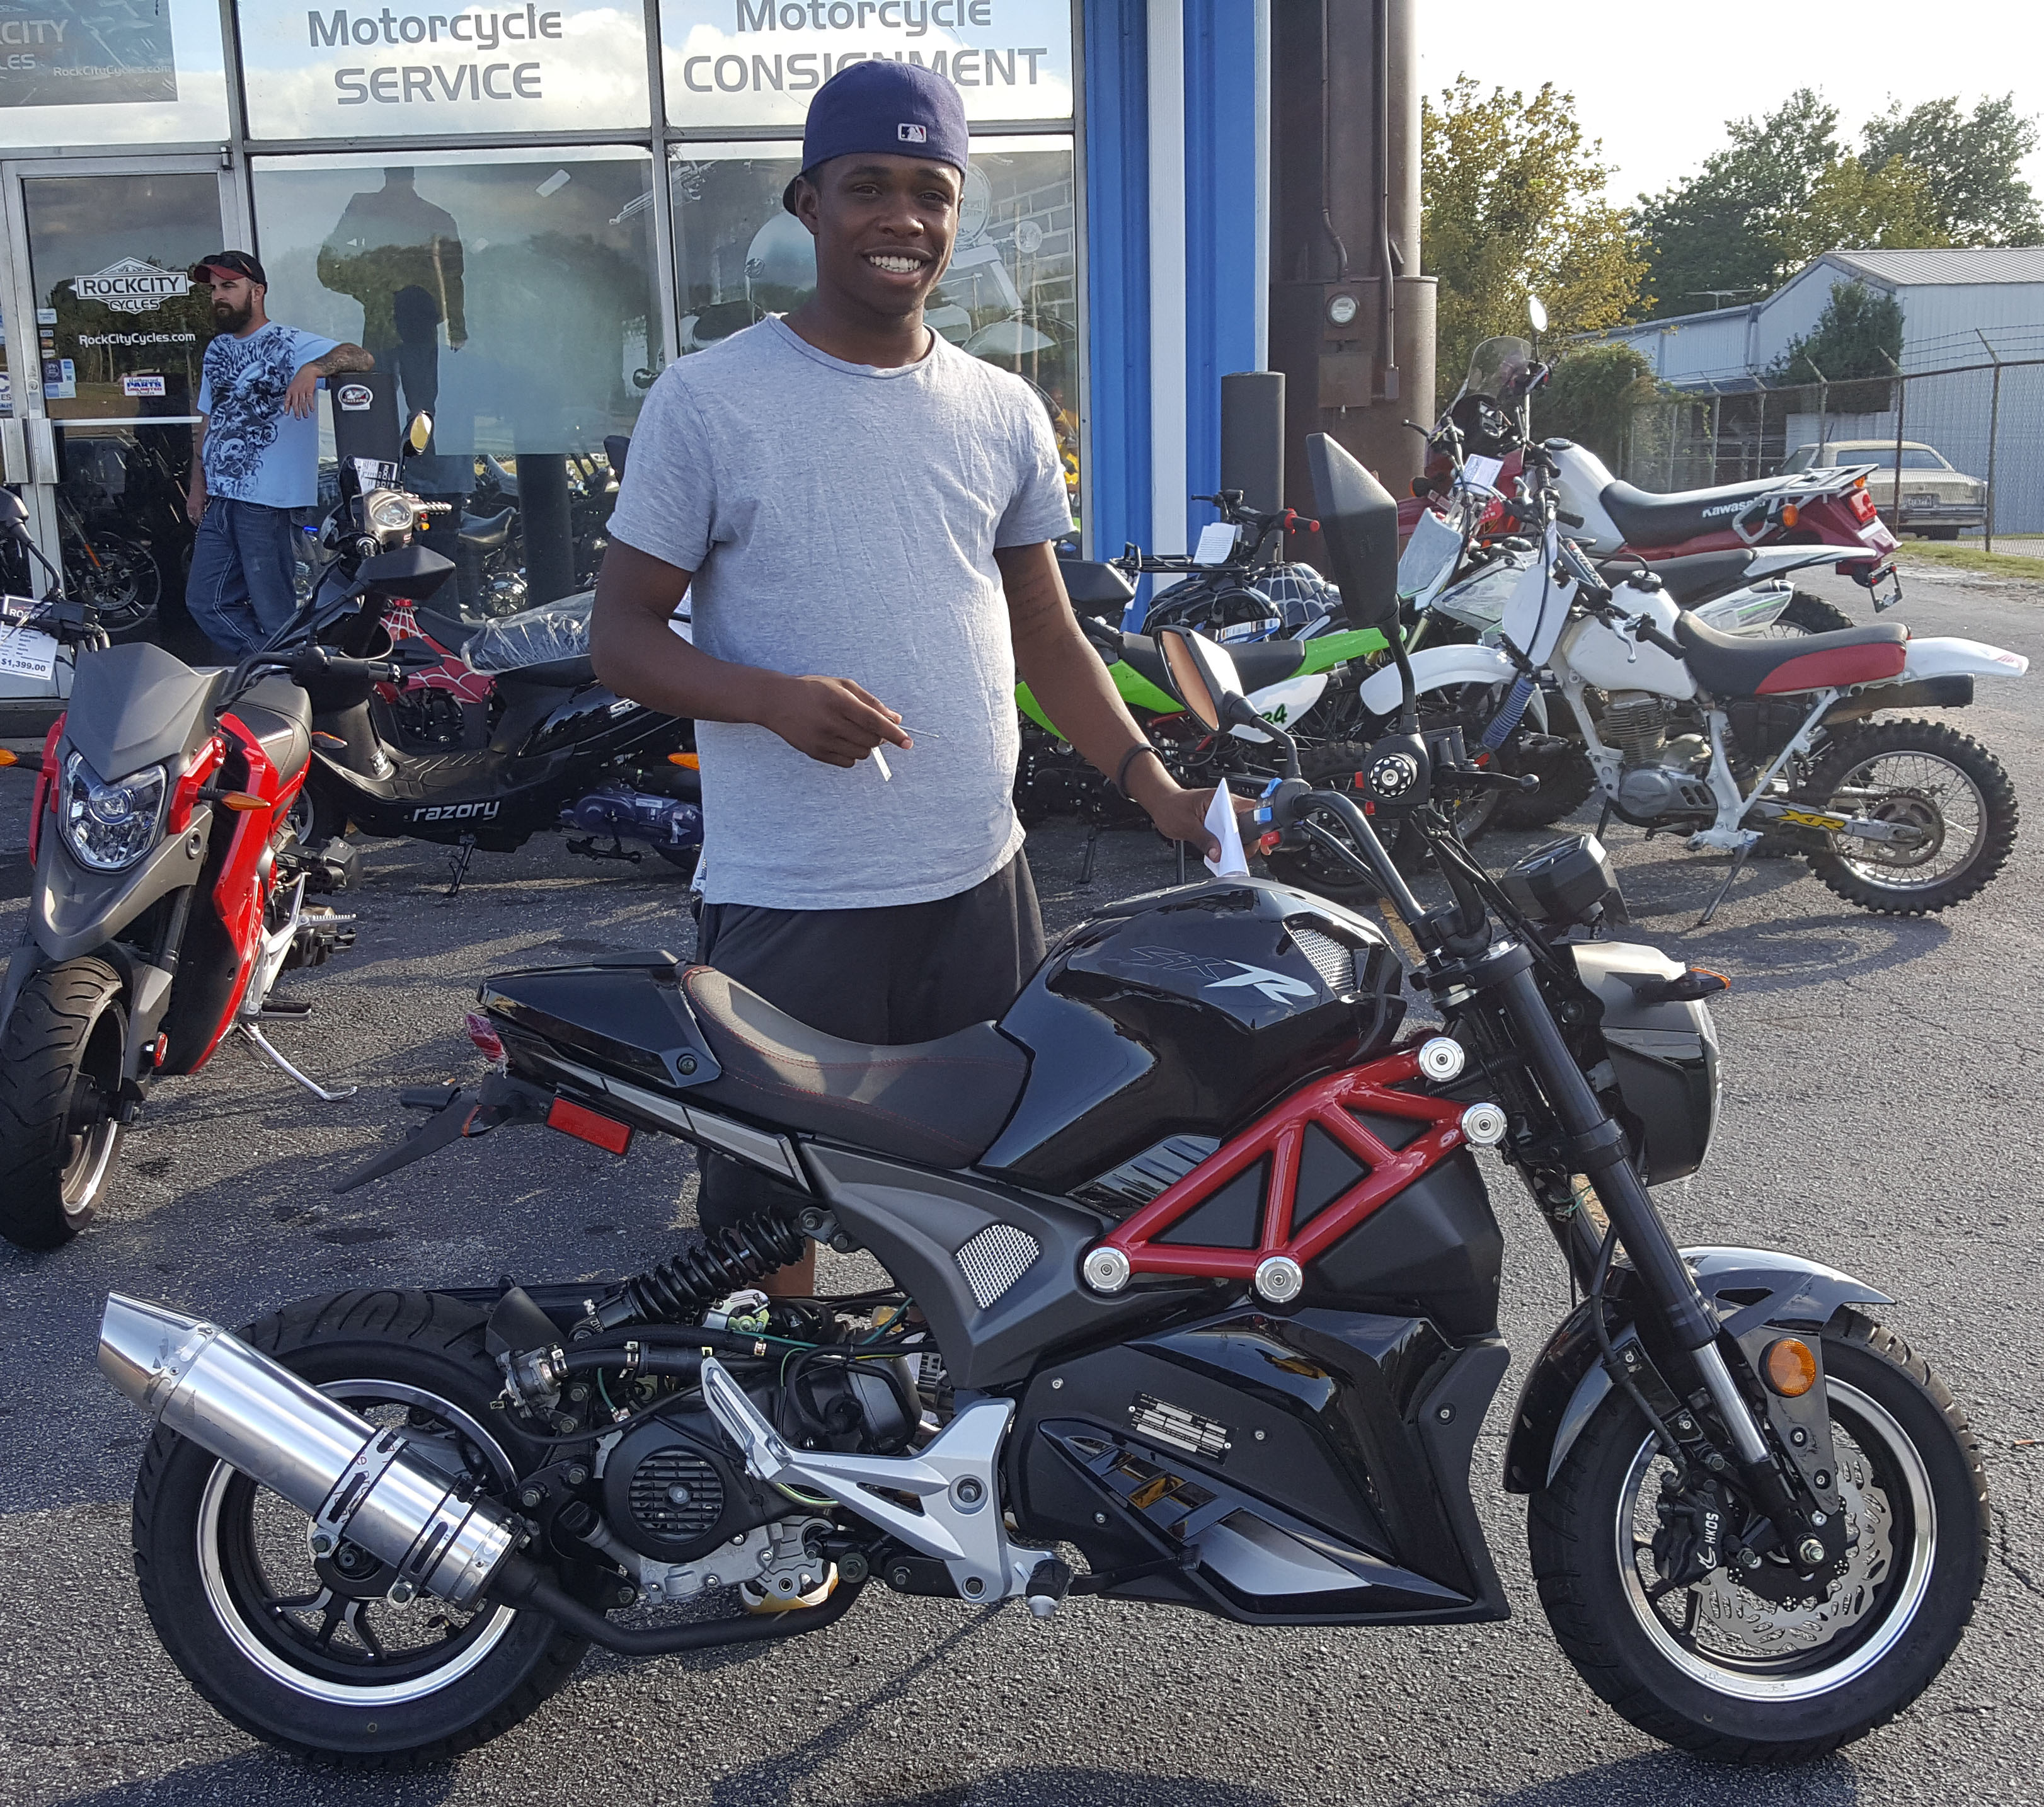 Marcus S. Jr. with his 2017 Dongfang 50-STT Scooter